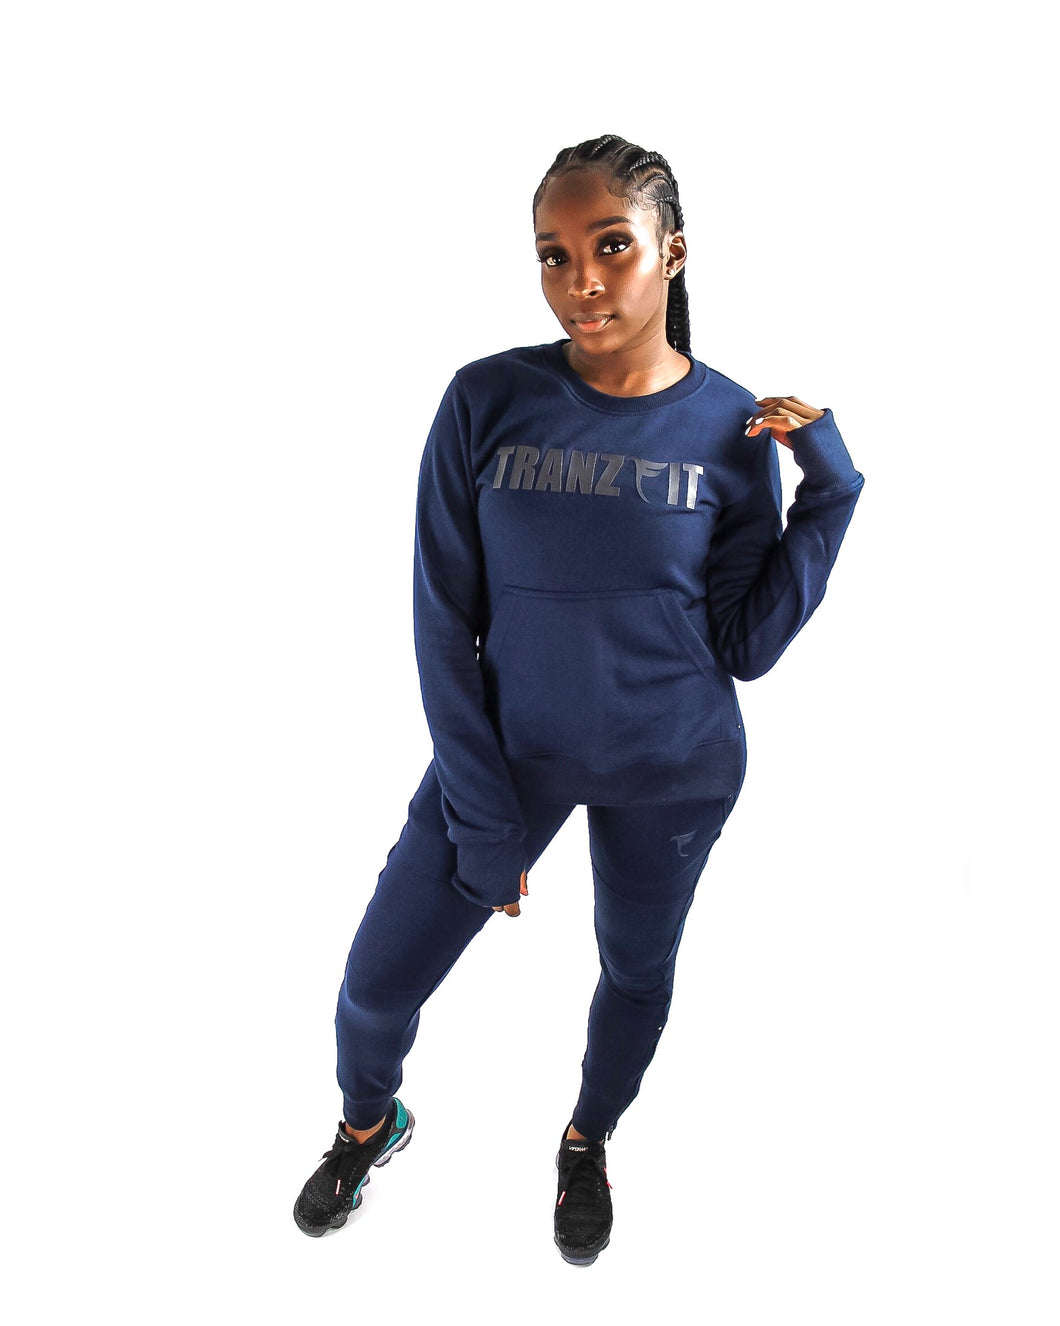 Tranzfit-Hidden Logo Crew Neck Set(Navy)